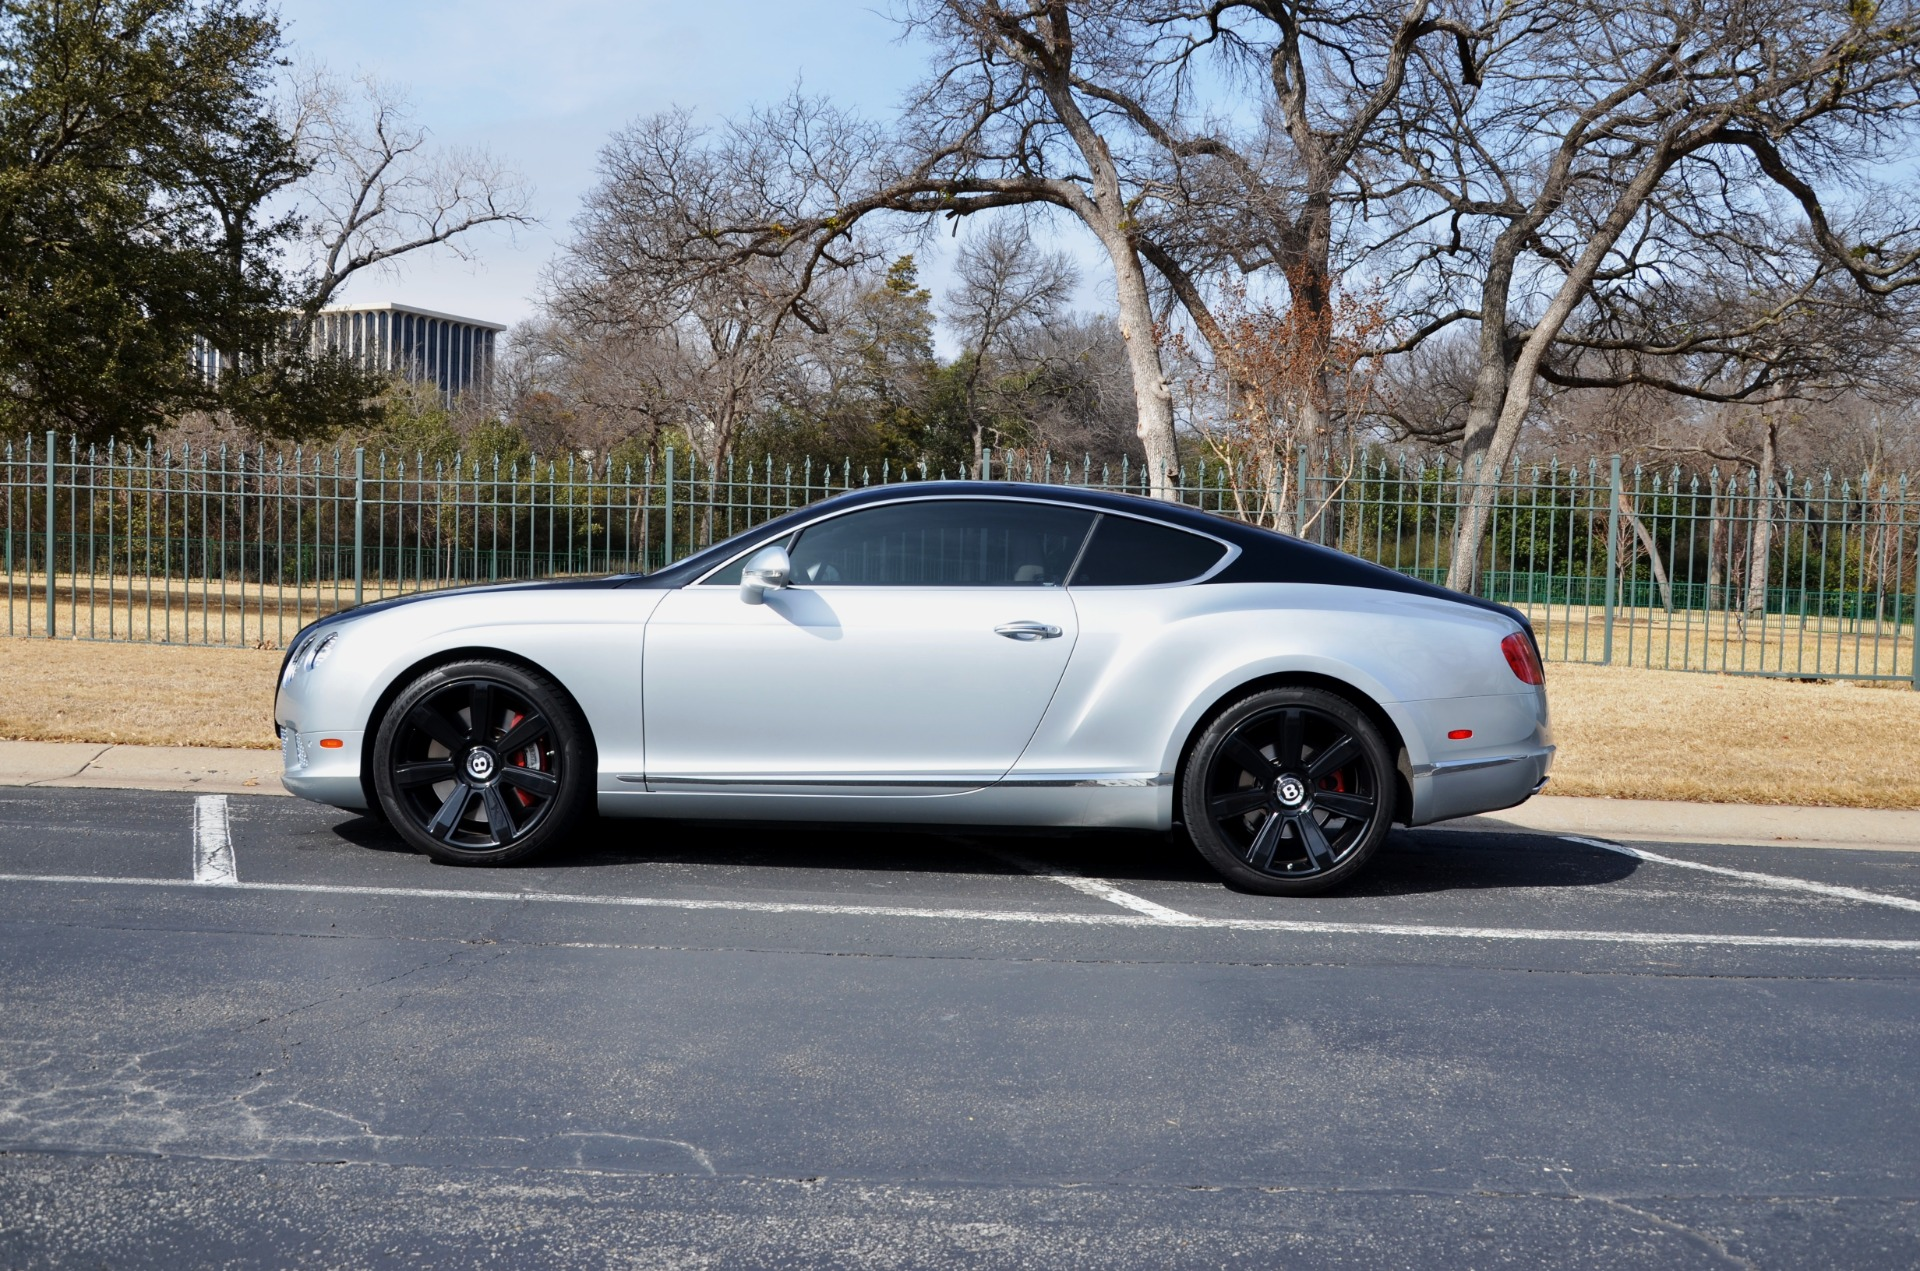 2012 bentley continental gt stock 12gtcoupe for sale near dallas tx tx bentley dealer. Black Bedroom Furniture Sets. Home Design Ideas